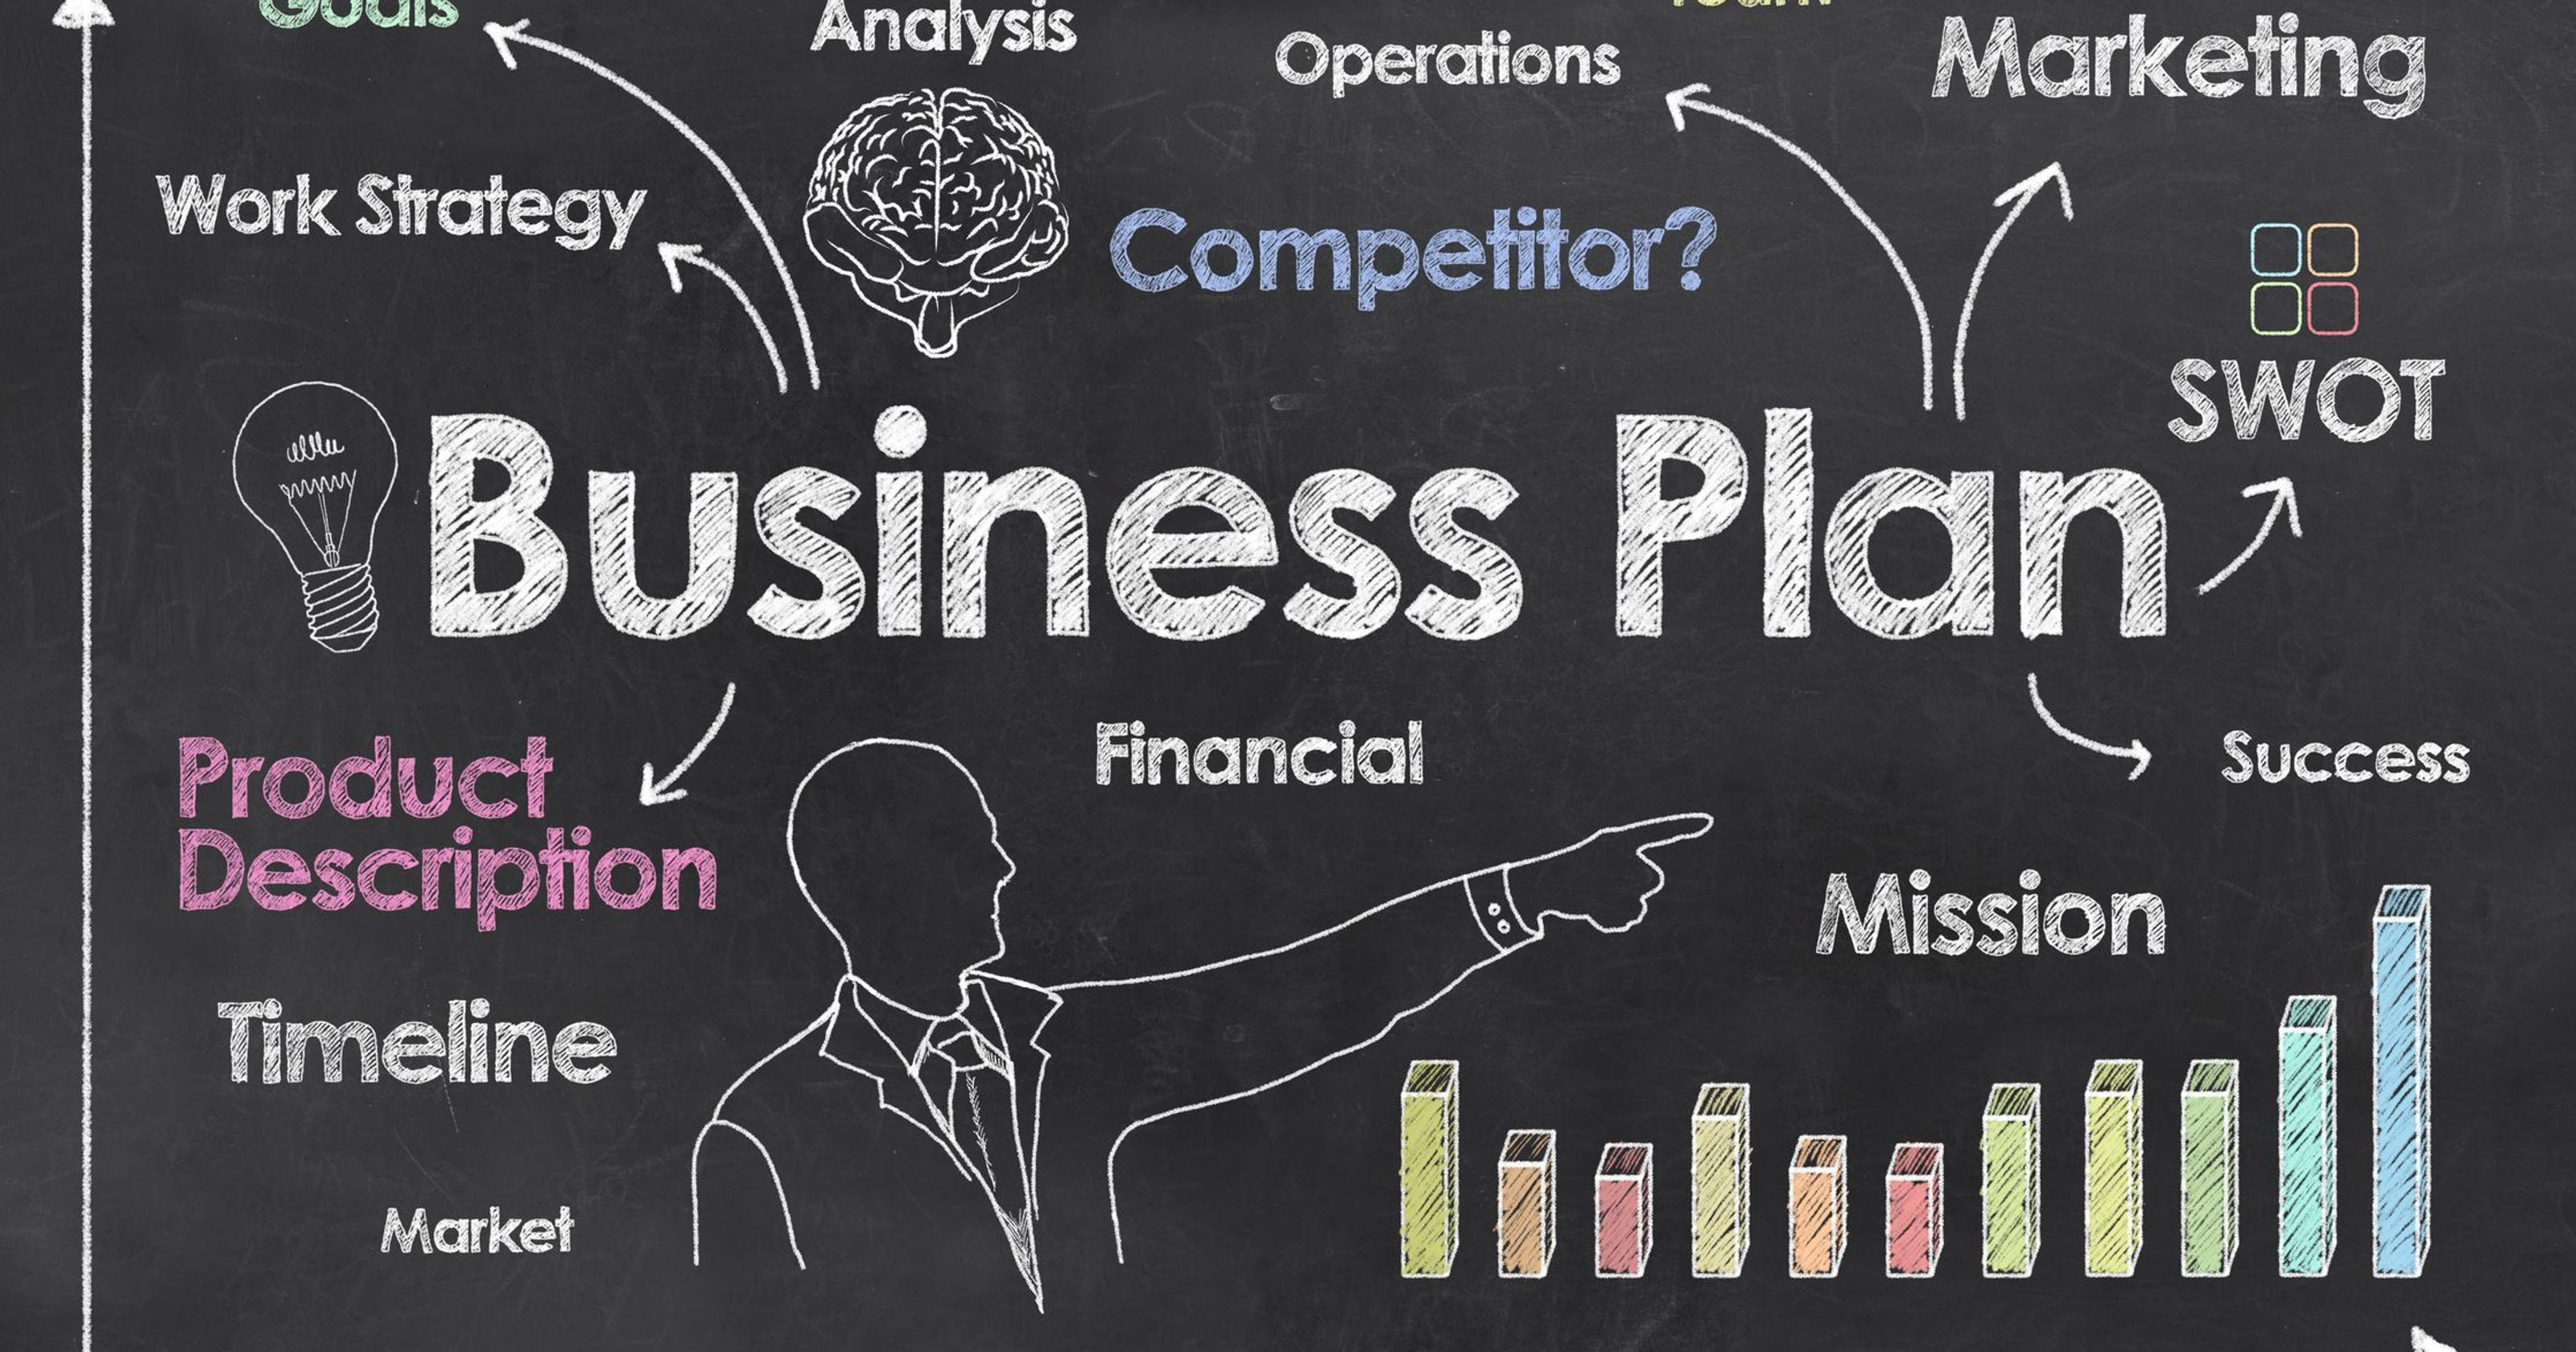 Startup Business Plan: Top 10 Tips